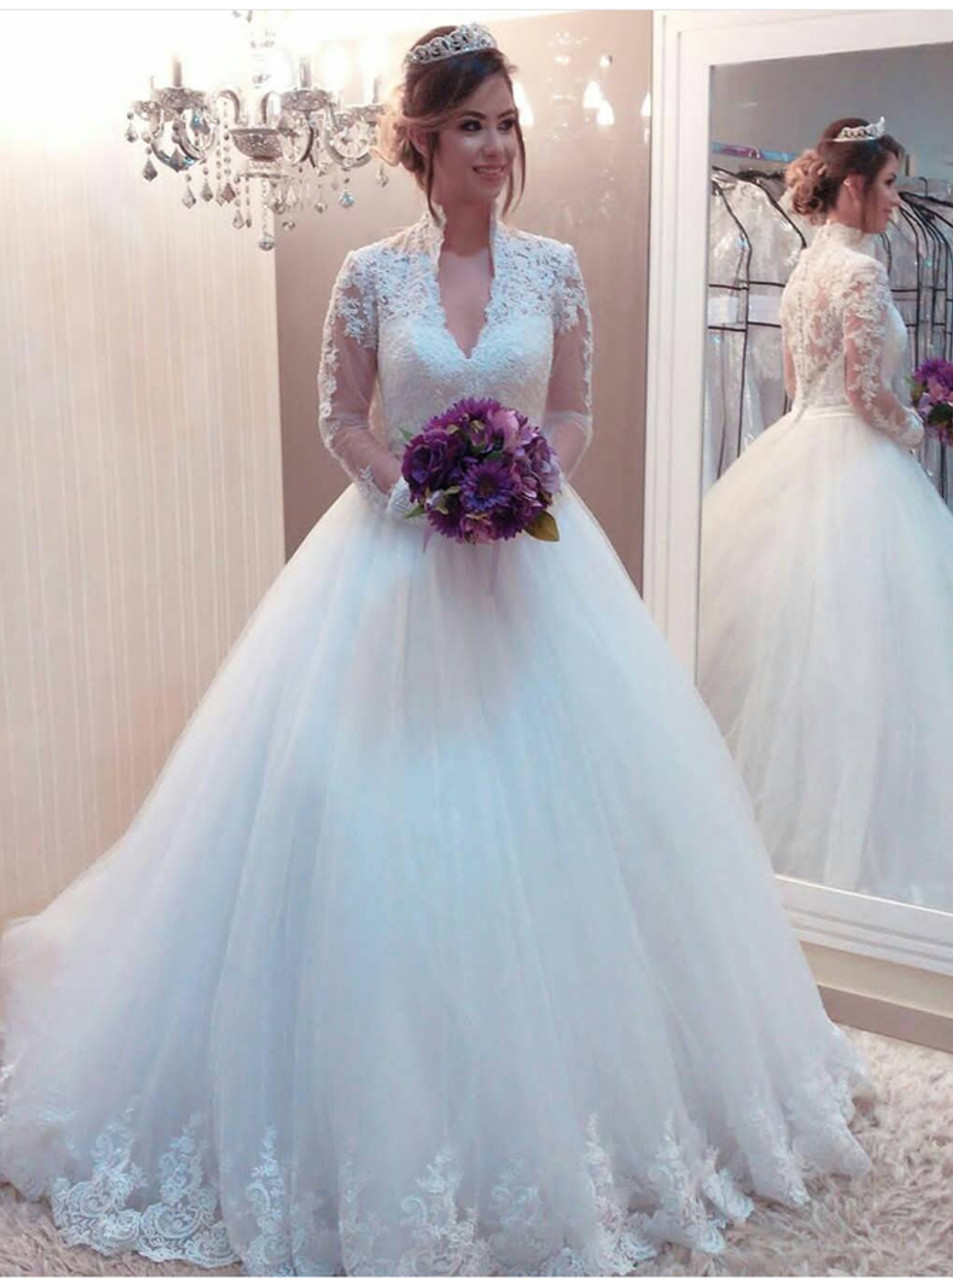 Princess Wedding Gown: Princess Wedding Gown With Long Sleeves,High Neck Bridal